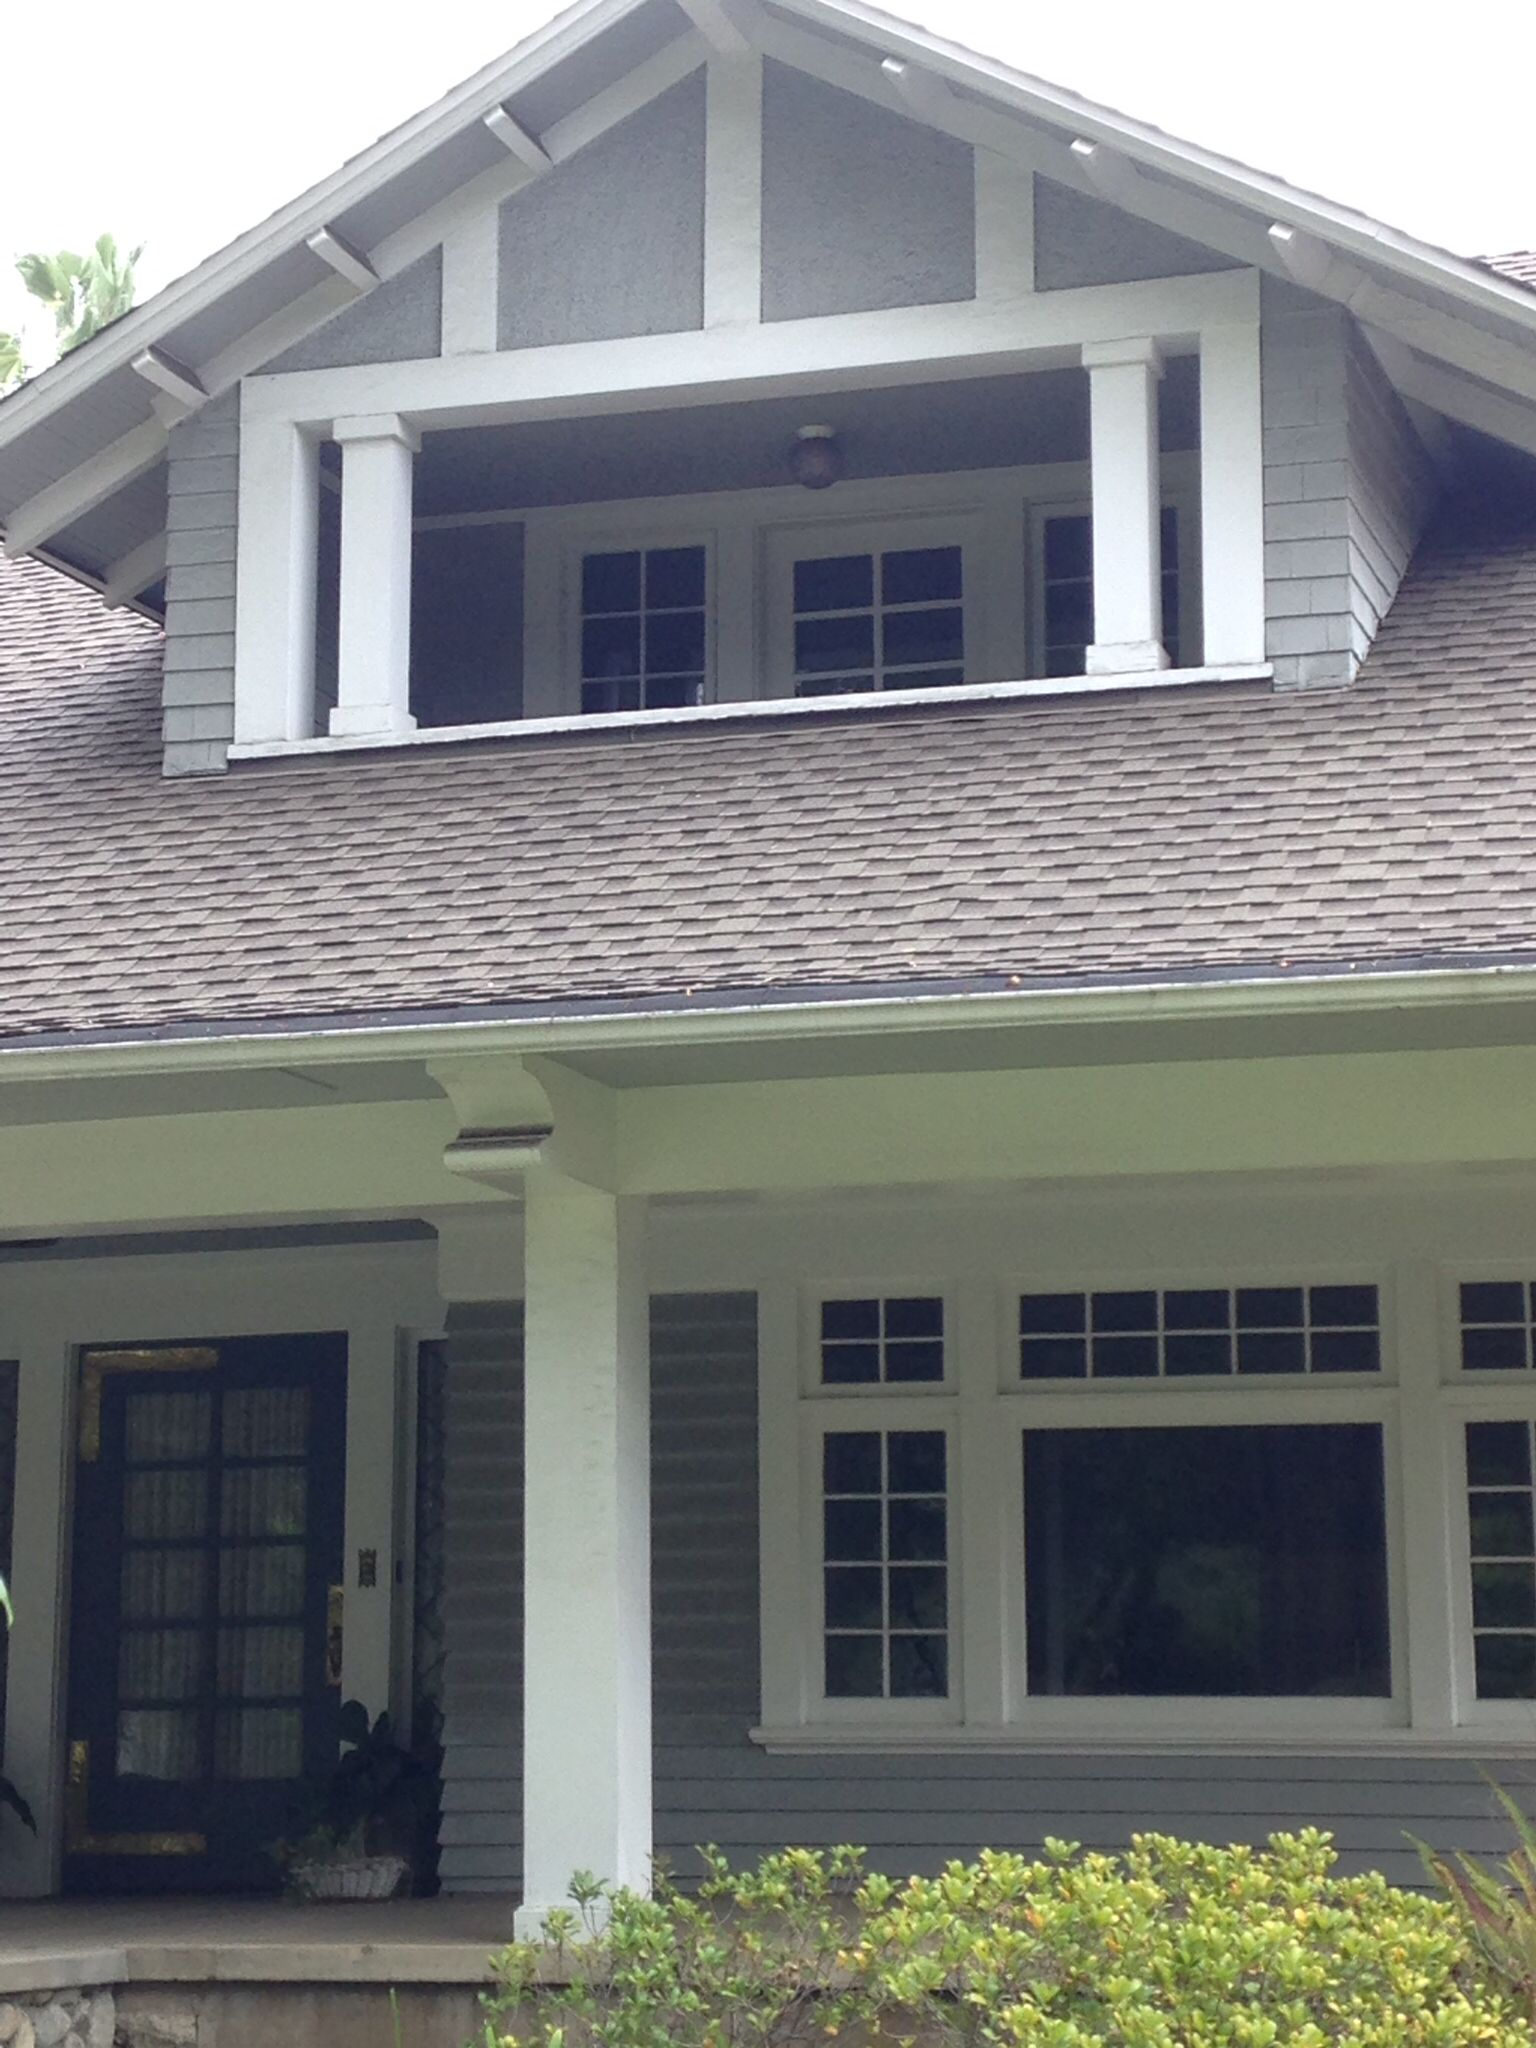 Very Cool Dormer Second Story Partially Enclose Porch Note Columns Which Add To Vertical Lines Our Front Bungalow House Design Enclosed Porches House Design